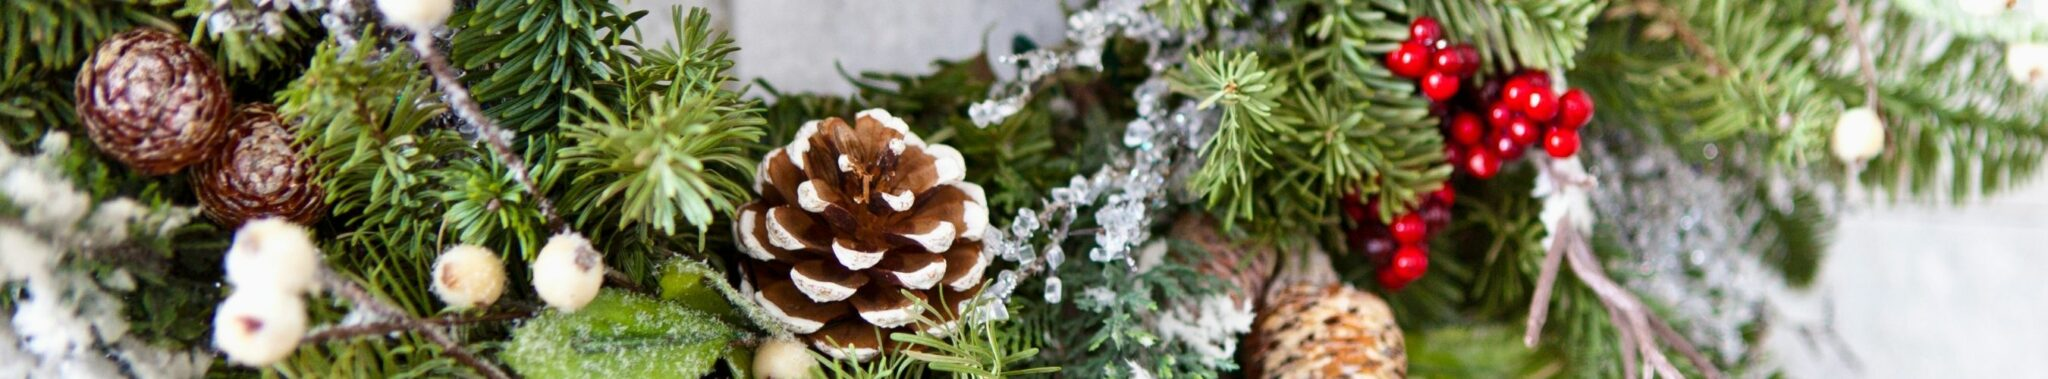 christmas wreath with decorations on door